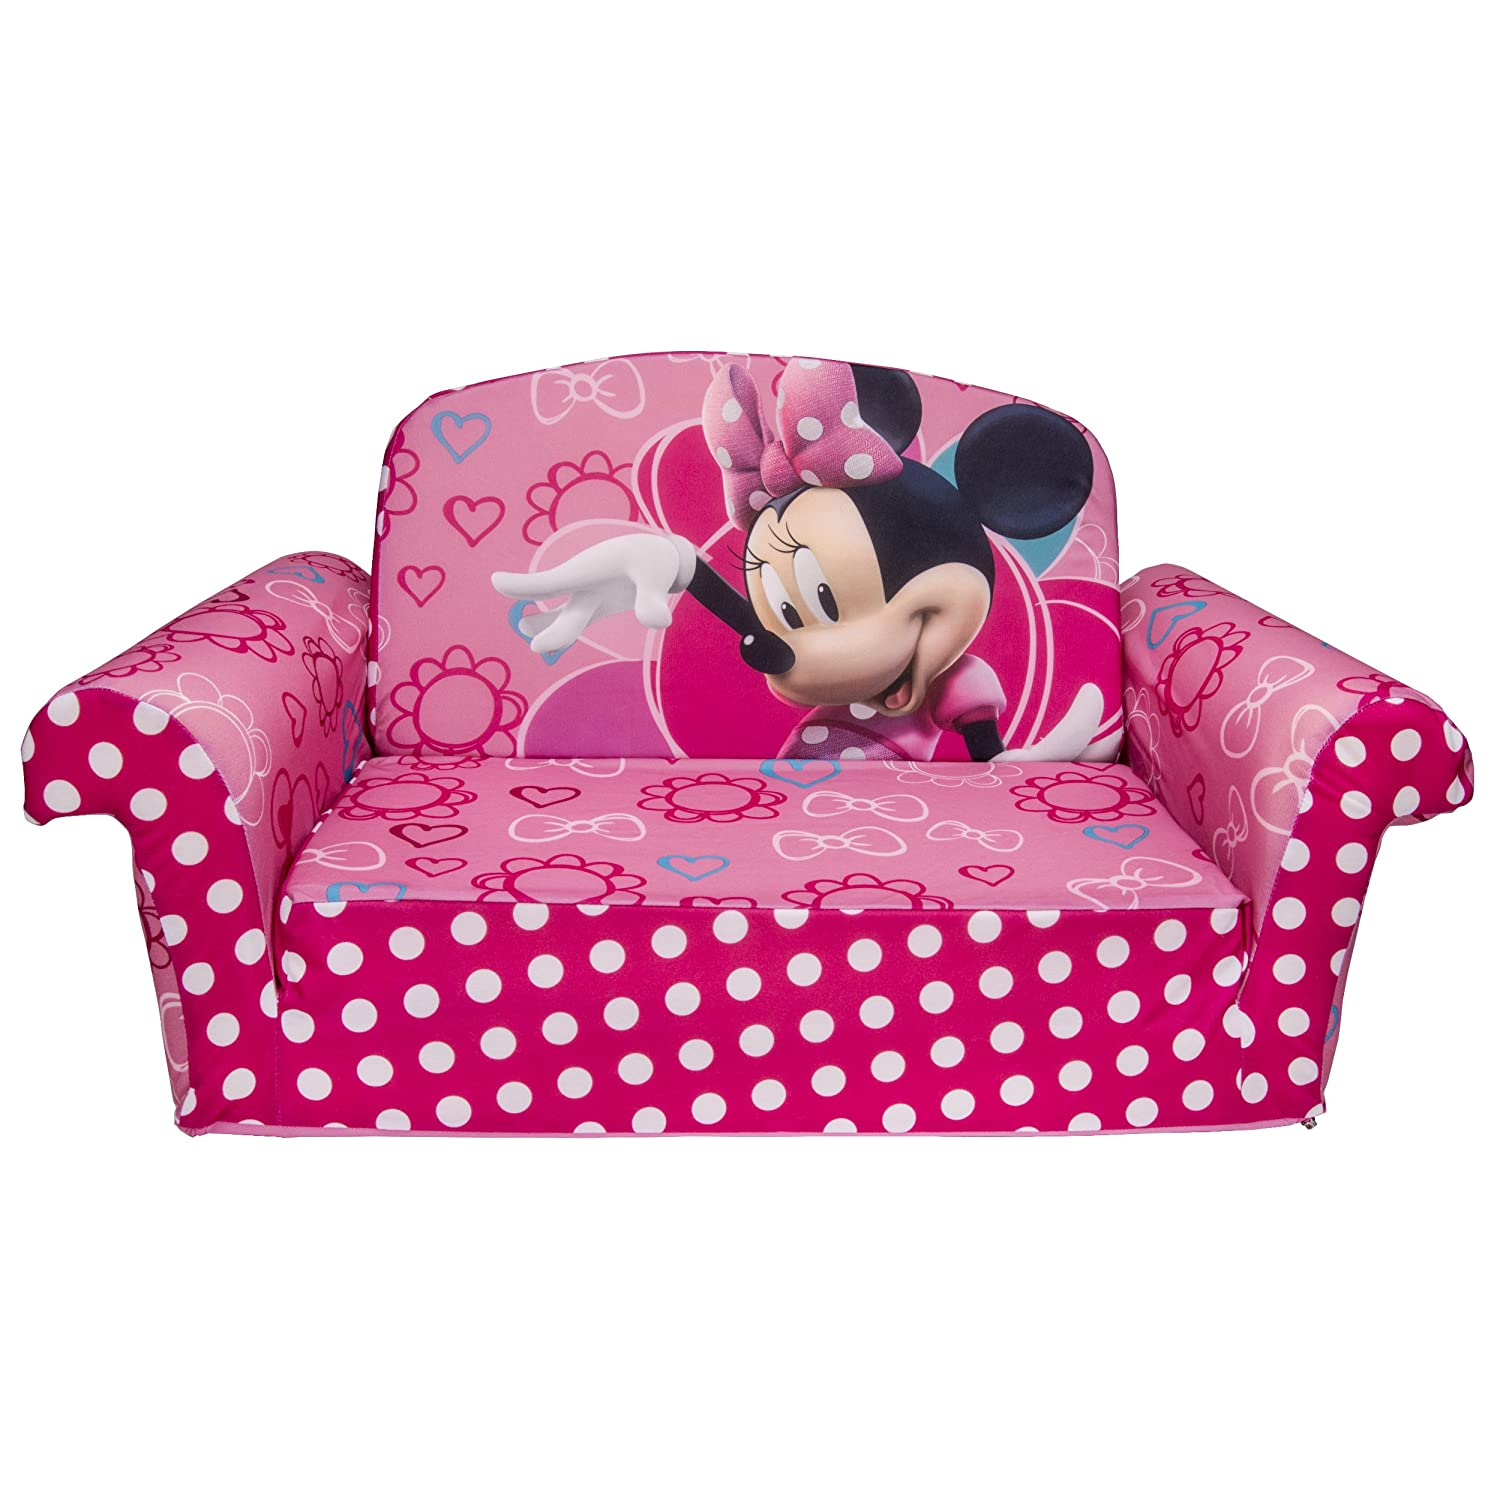 Marshmallow Childrens Furniture 2 in 1 Flip Open Sofa Disneys